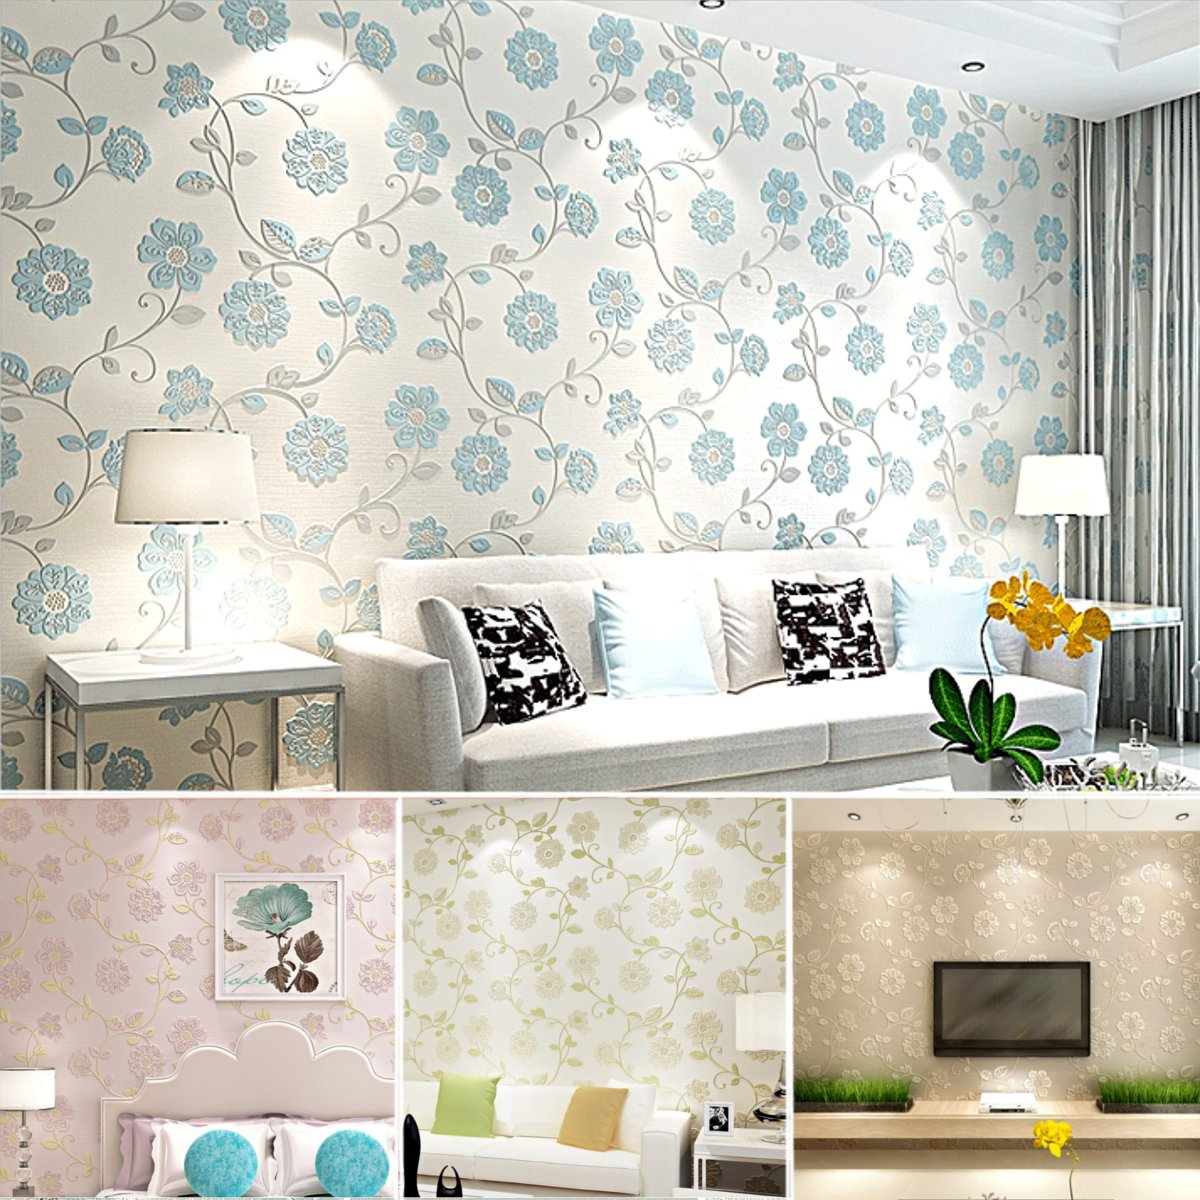 10M Luxury Flower Floral Embossed Textured Home Room Wallpaper Wall ...